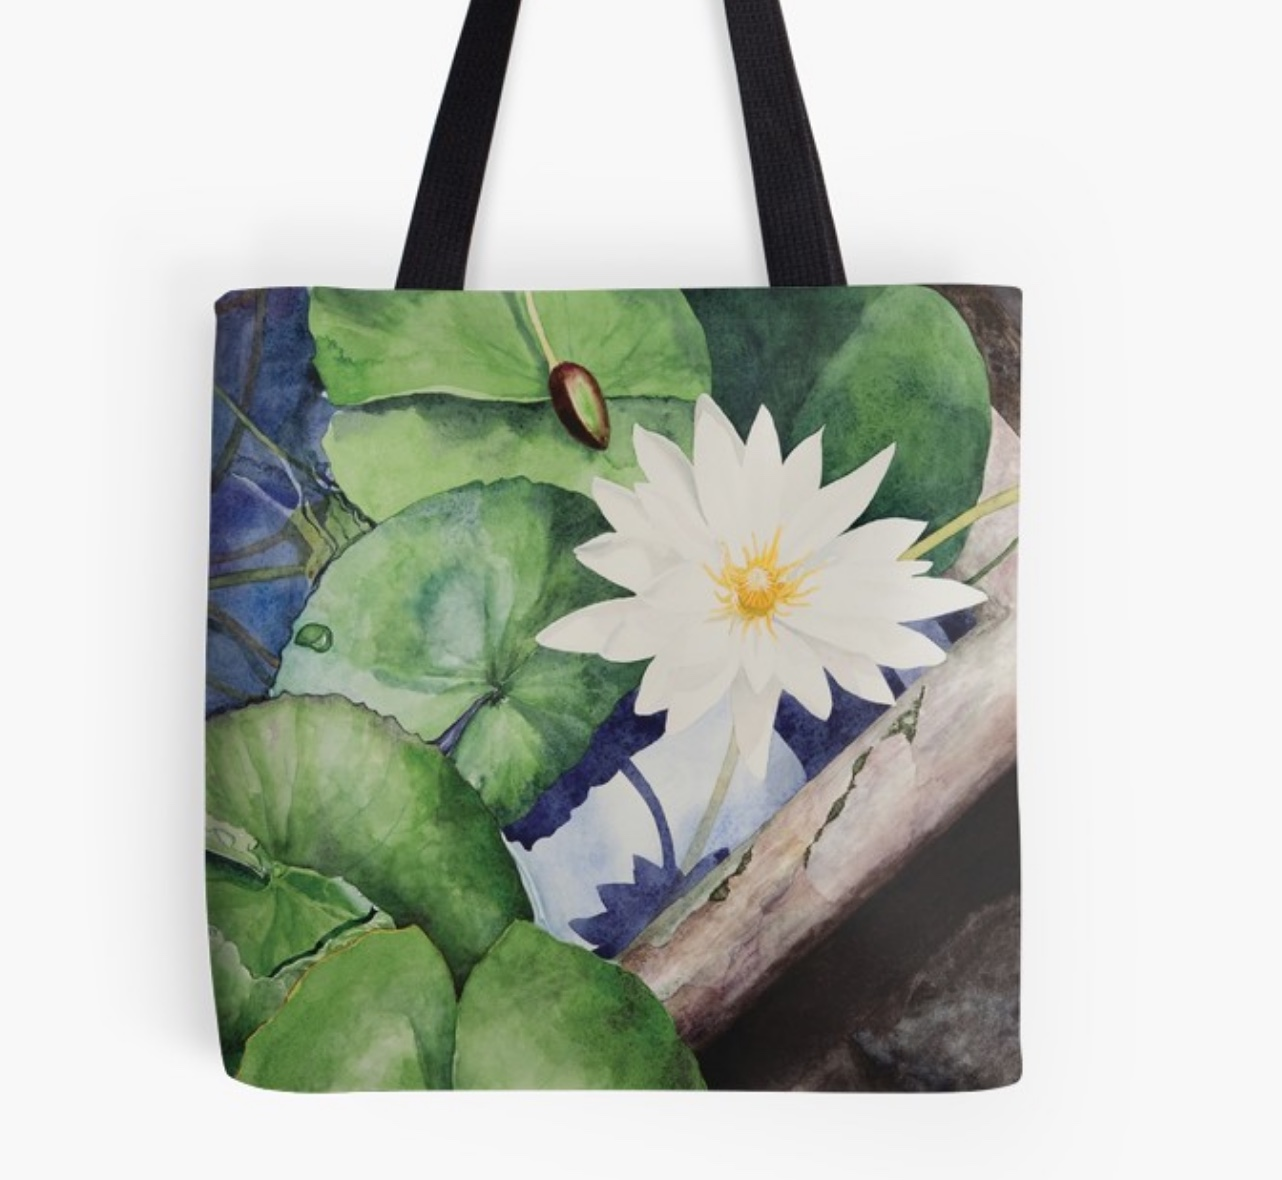 Greenhouse Lily Tote Bag.jpeg